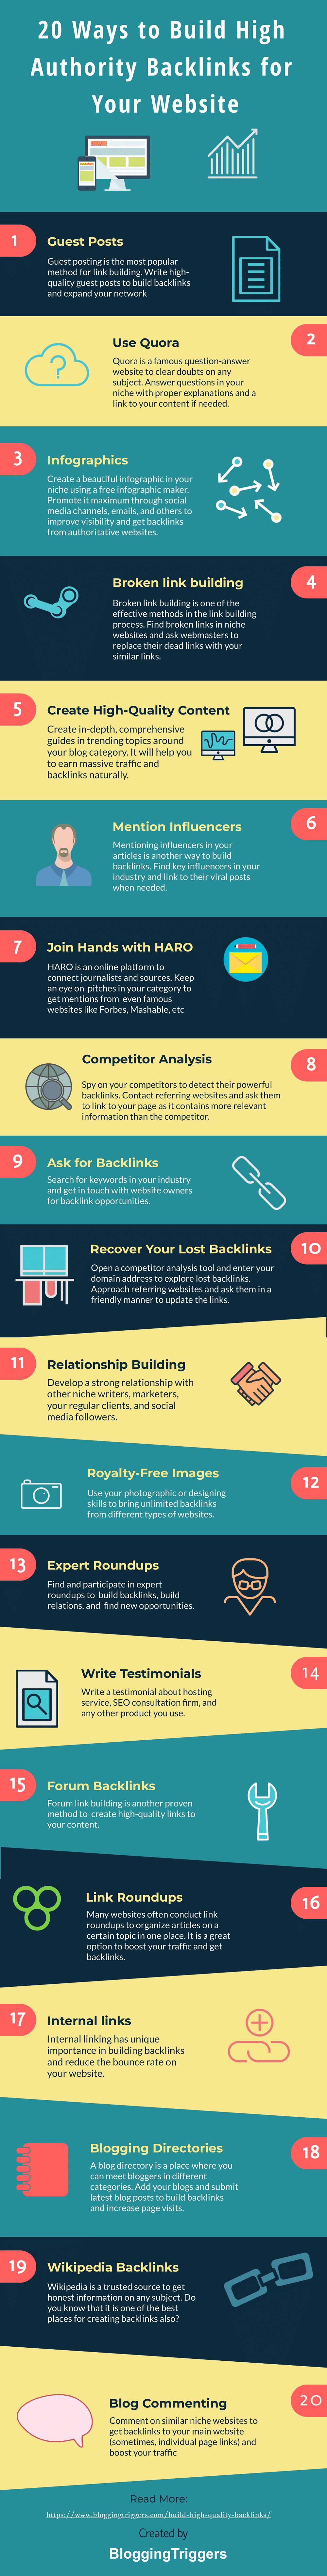 20-Ways-to-Build-High-Authority-Backlinks-for-Your-Website